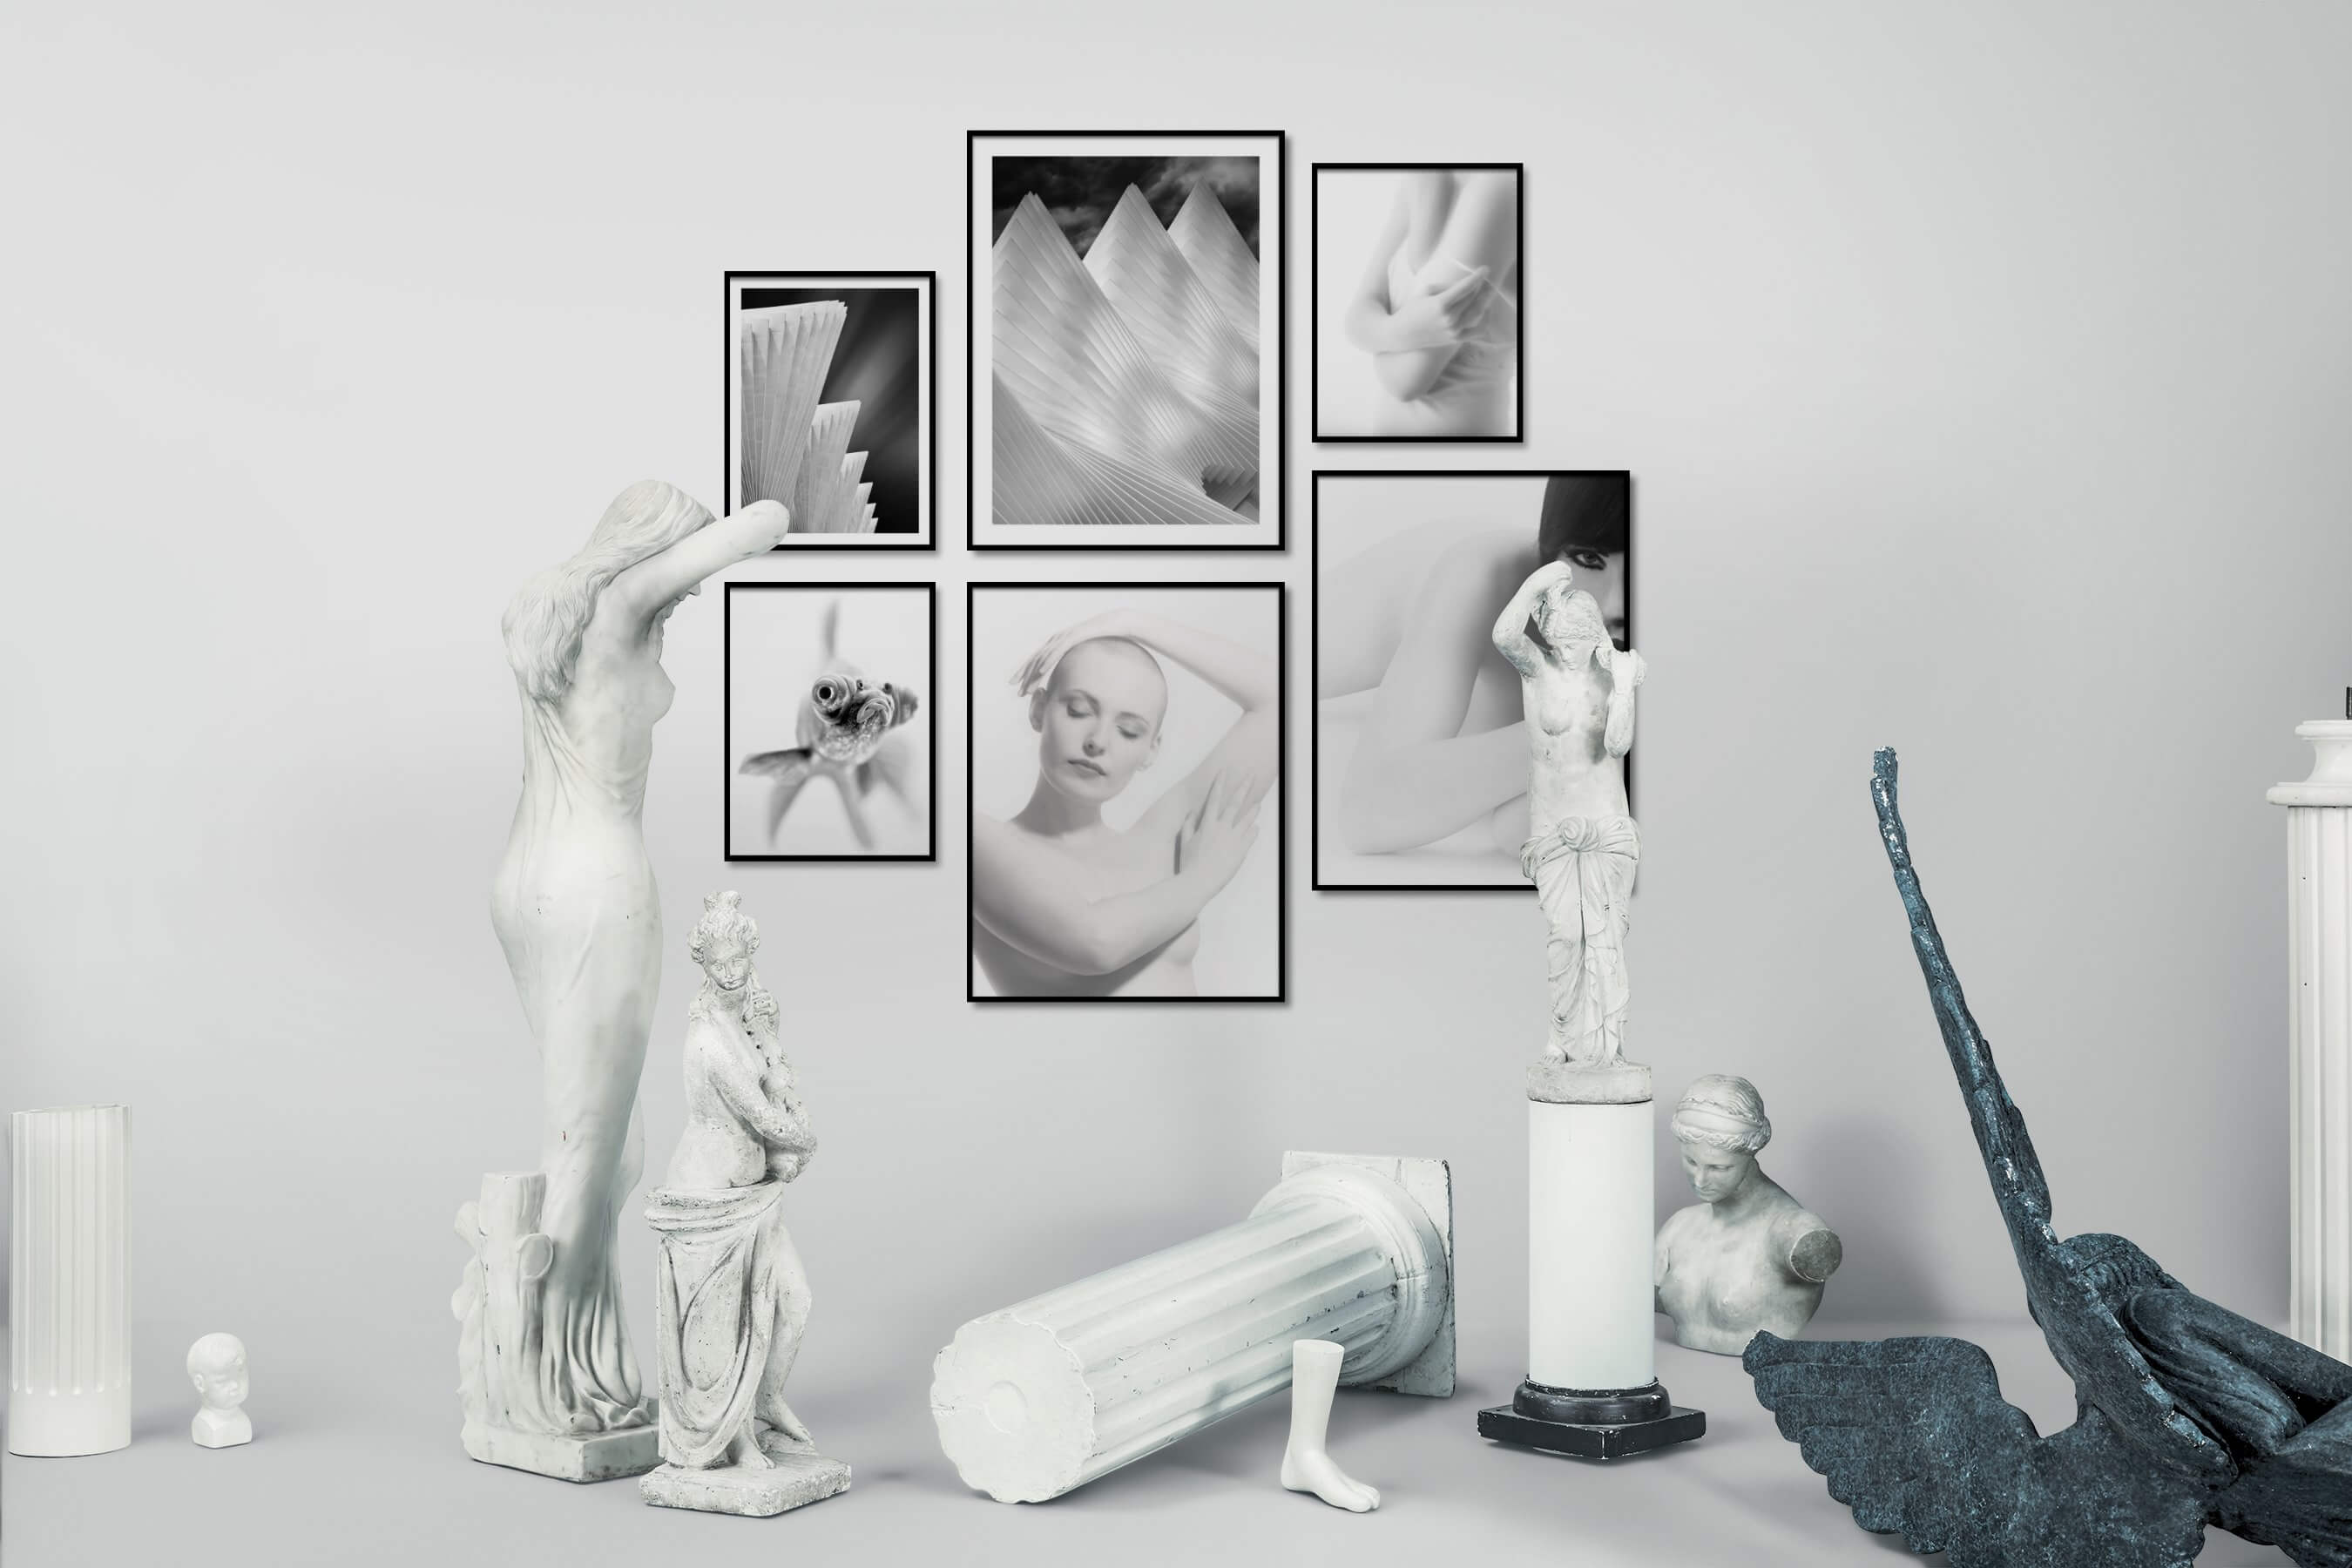 Gallery wall idea with six framed pictures arranged on a wall depicting Black & White, For the Moderate, Bright Tones, For the Minimalist, Animals, and Fashion & Beauty